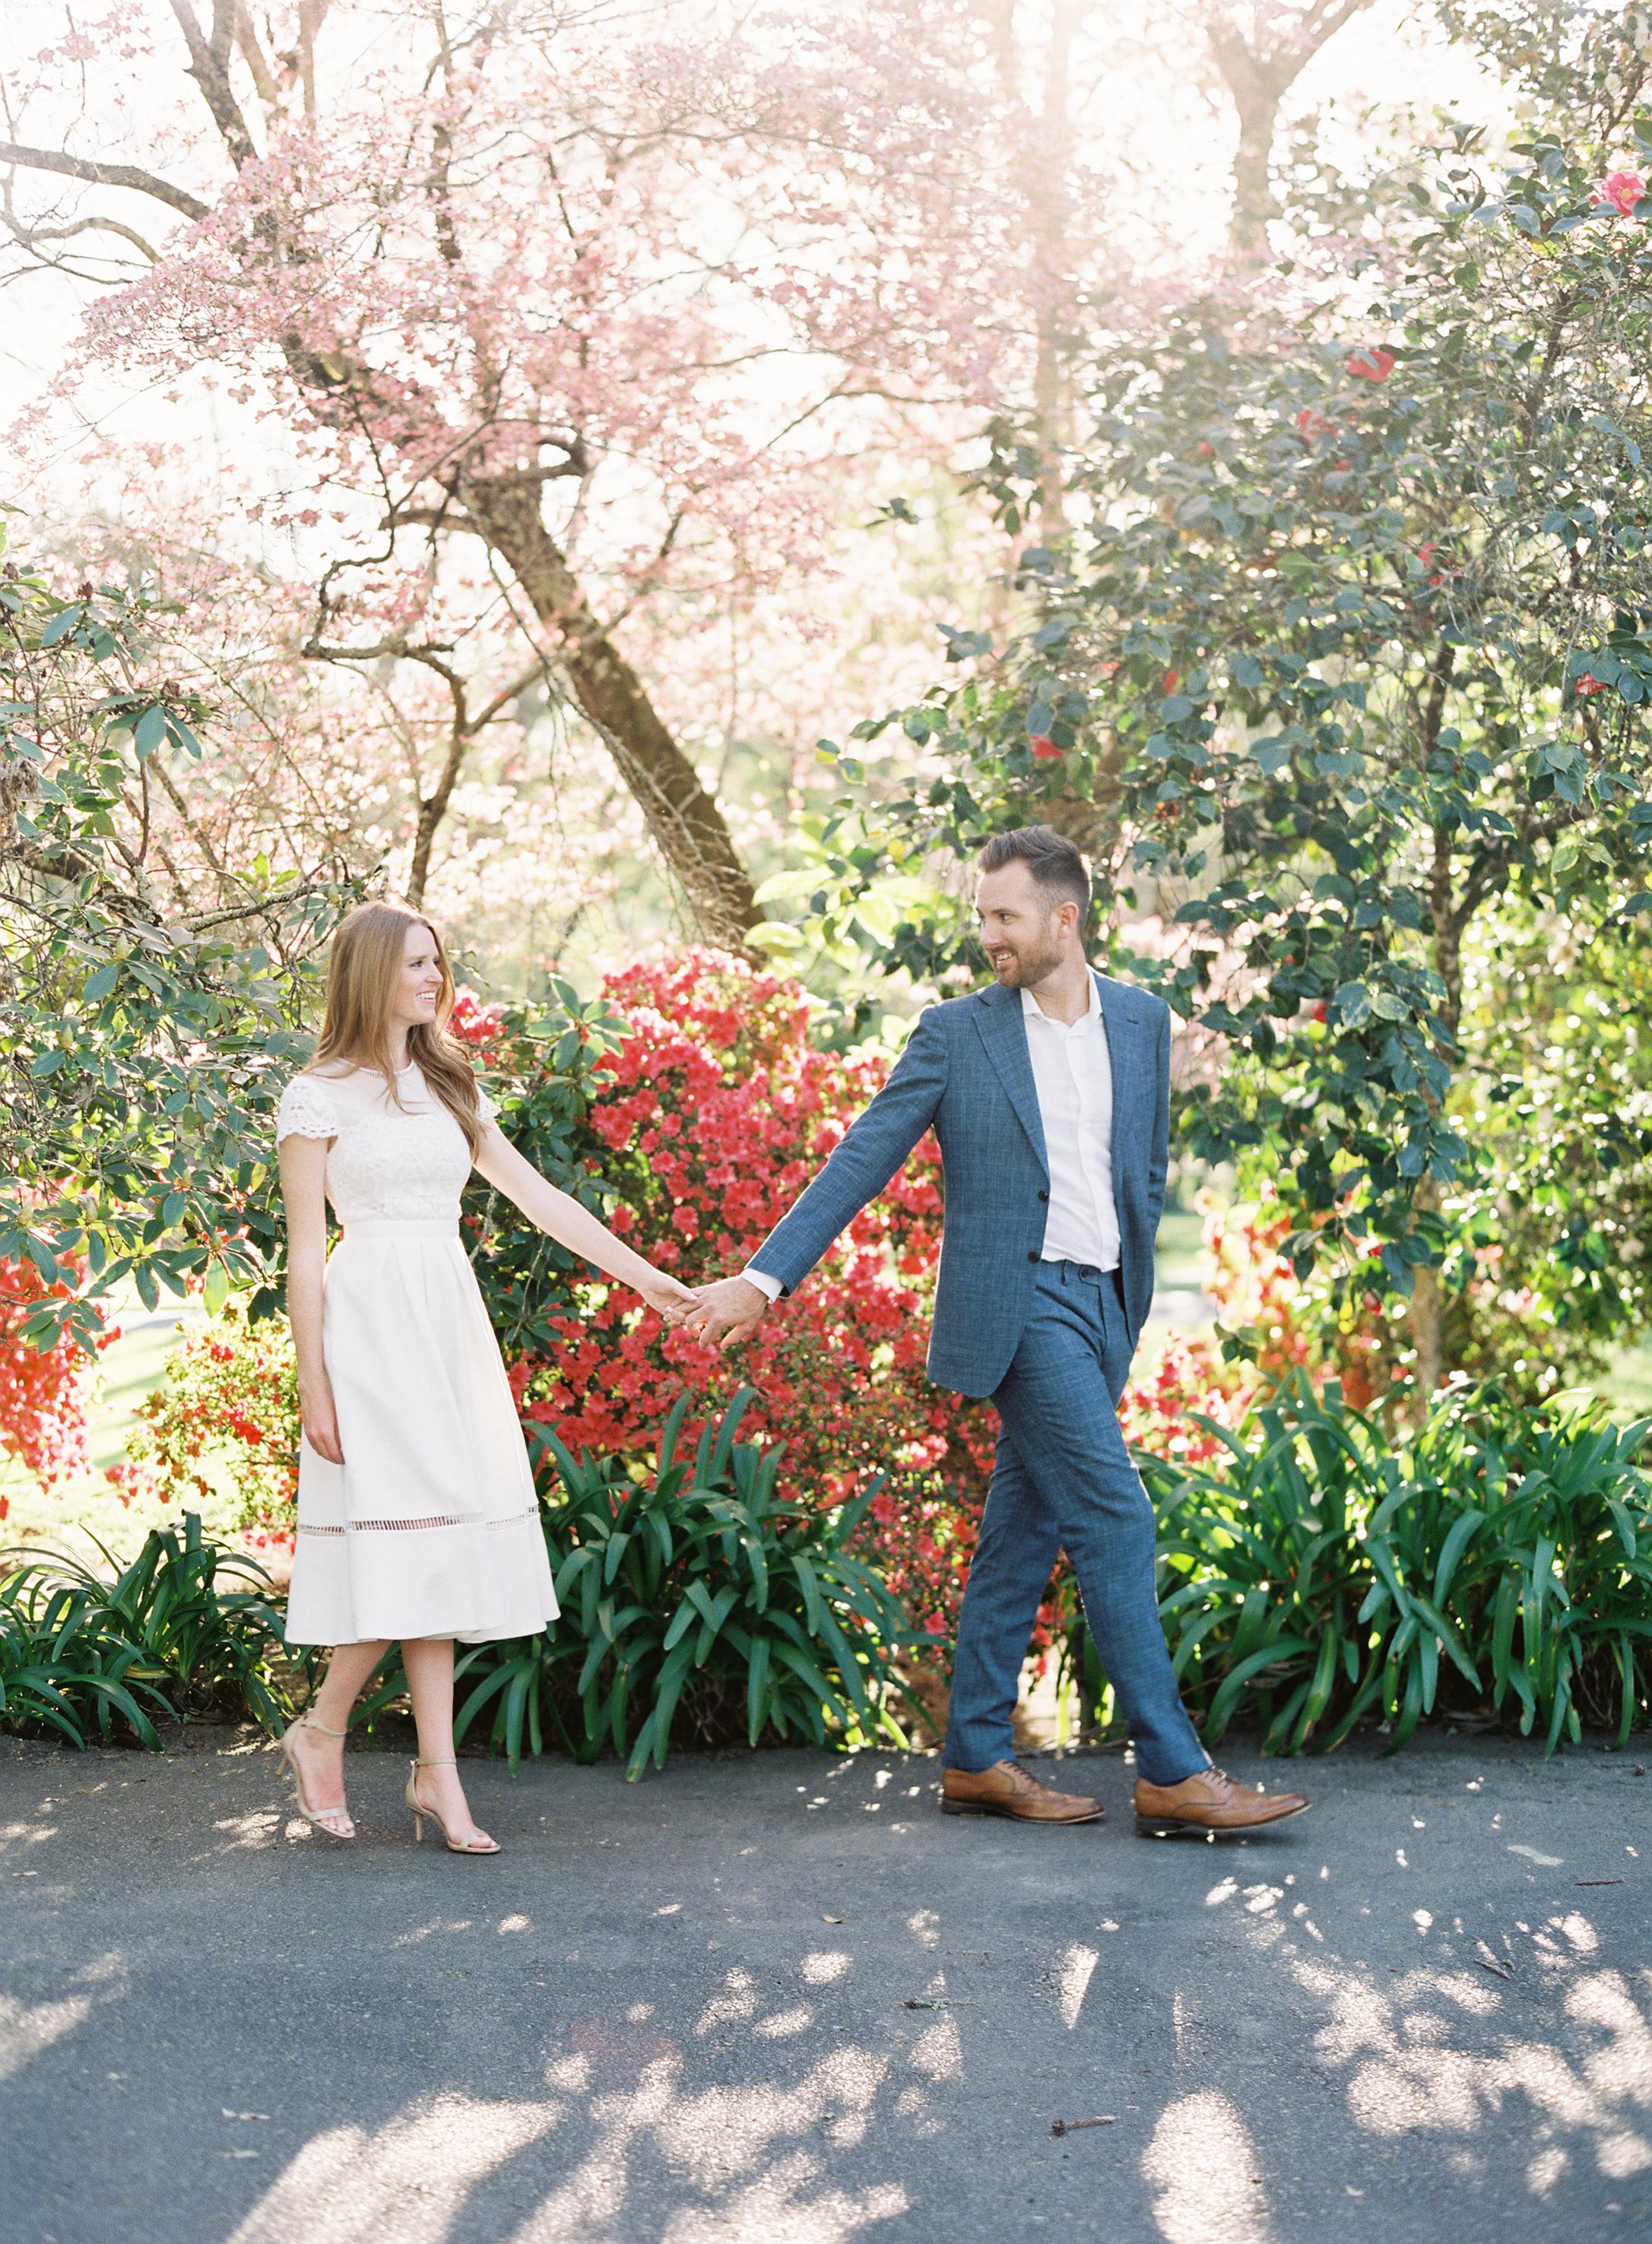 Meghan Mehan Photography - Napa Engagement Session 020.jpg